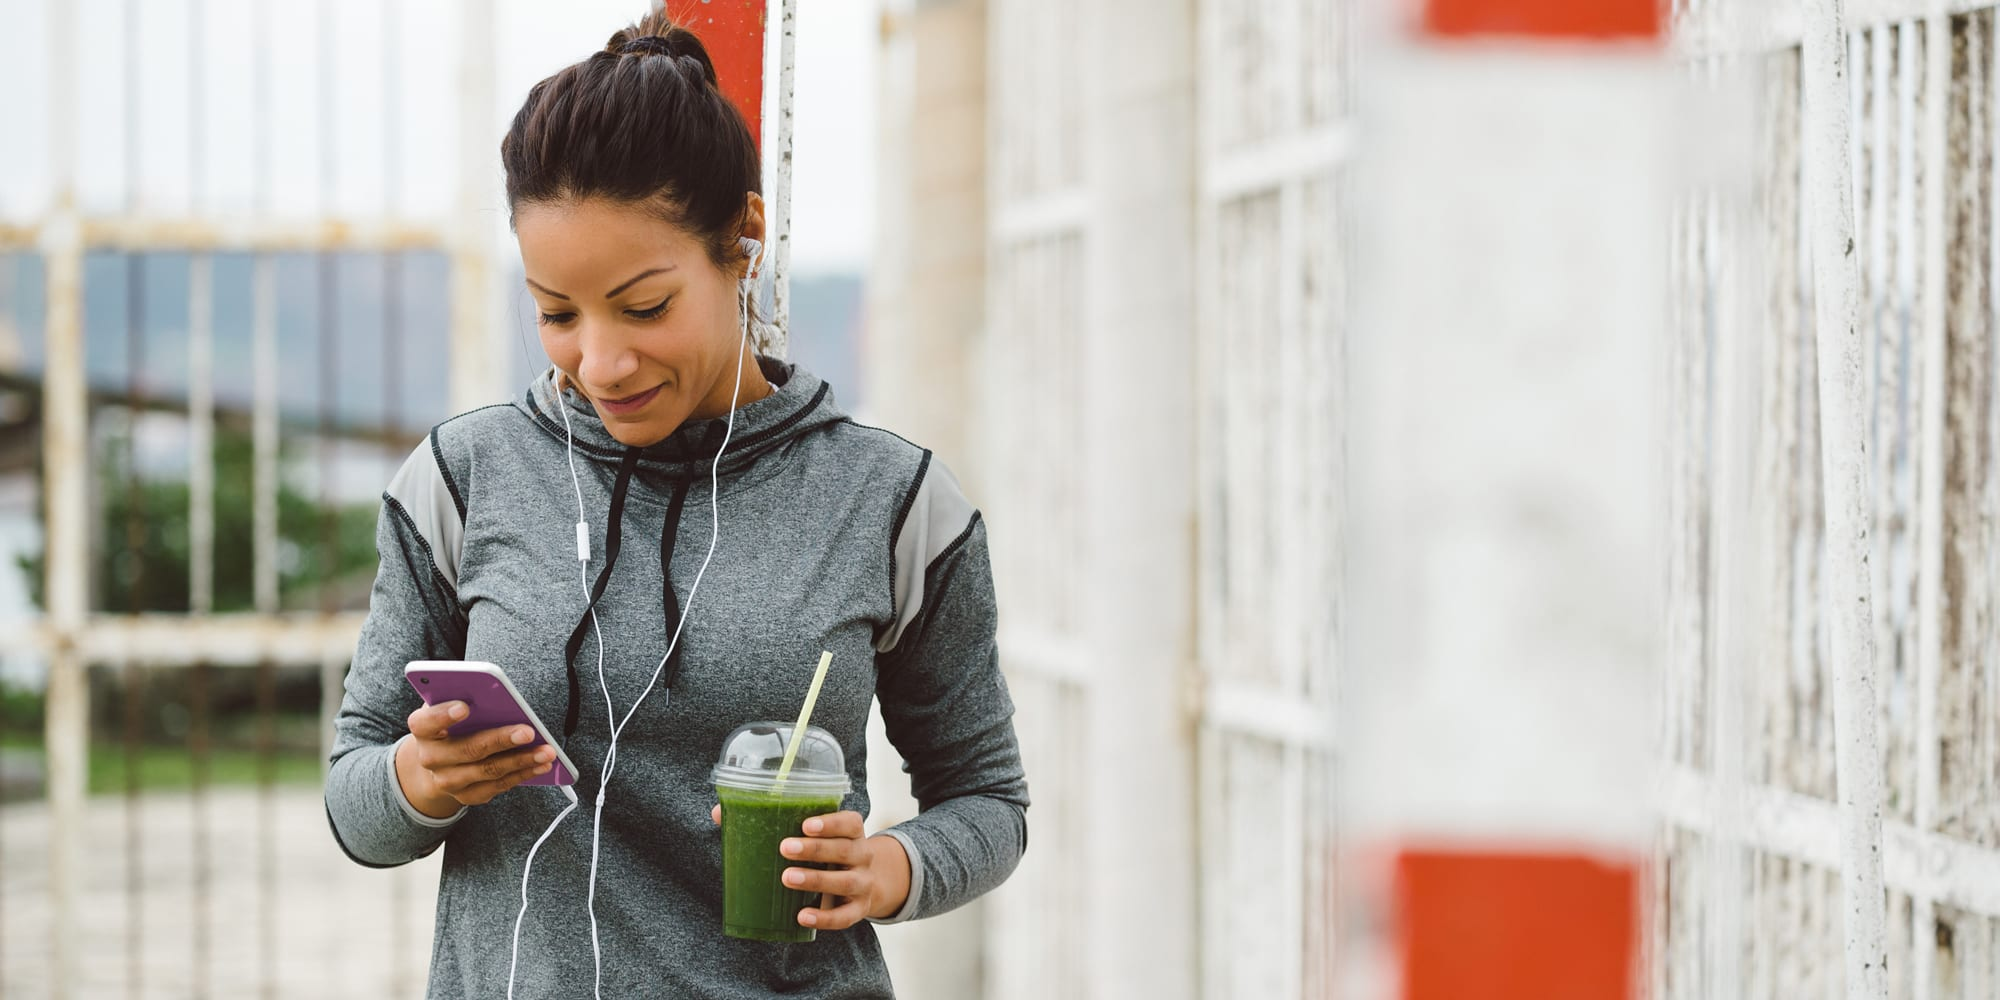 Are You Making These Post-Workout Nutrition Mistakes?